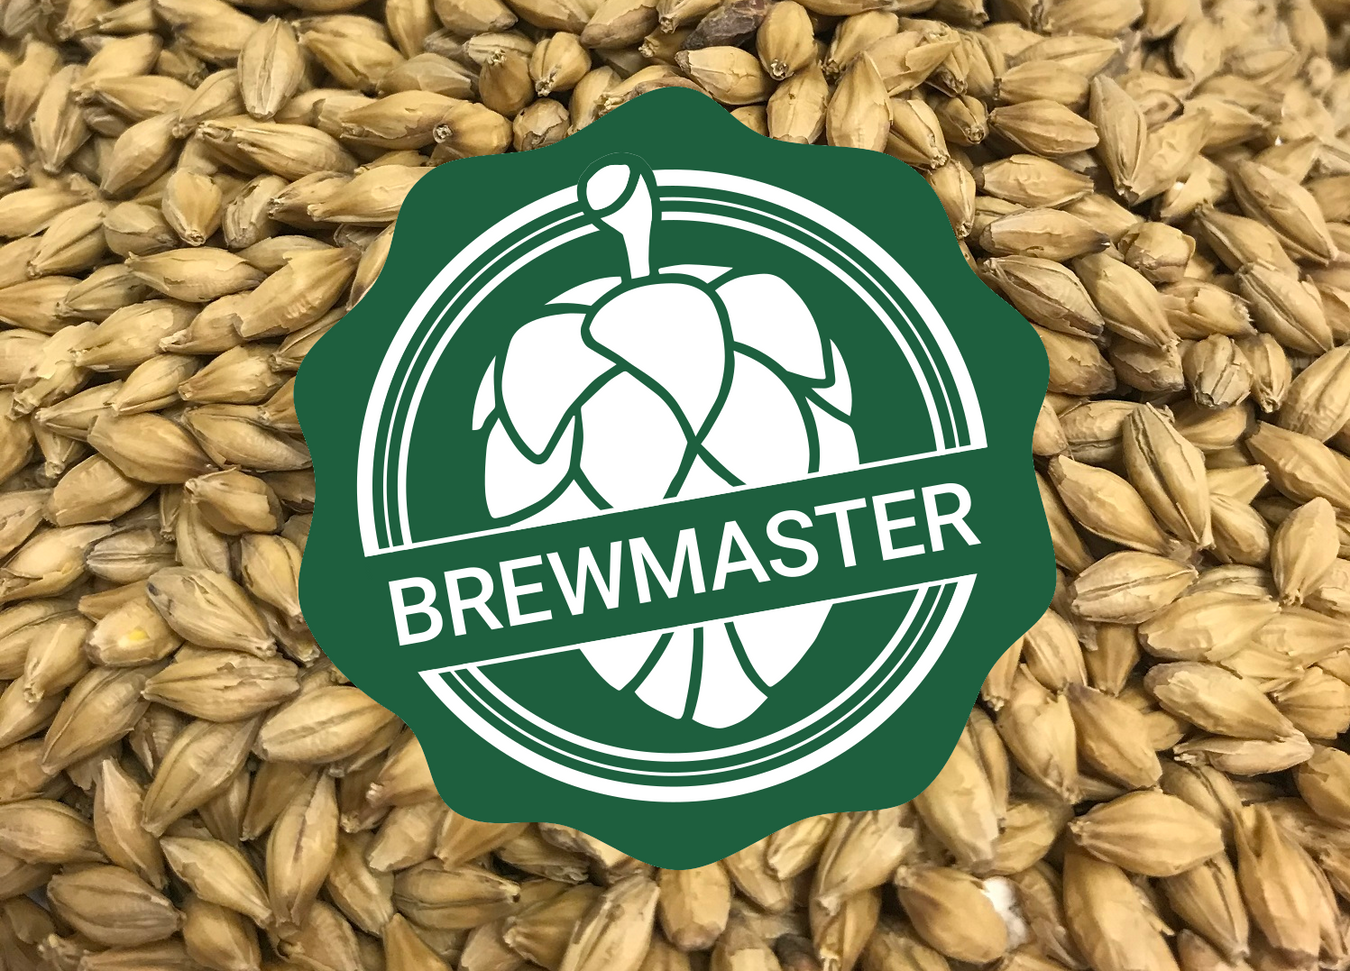 Brewmaster Malt to brew beer at home